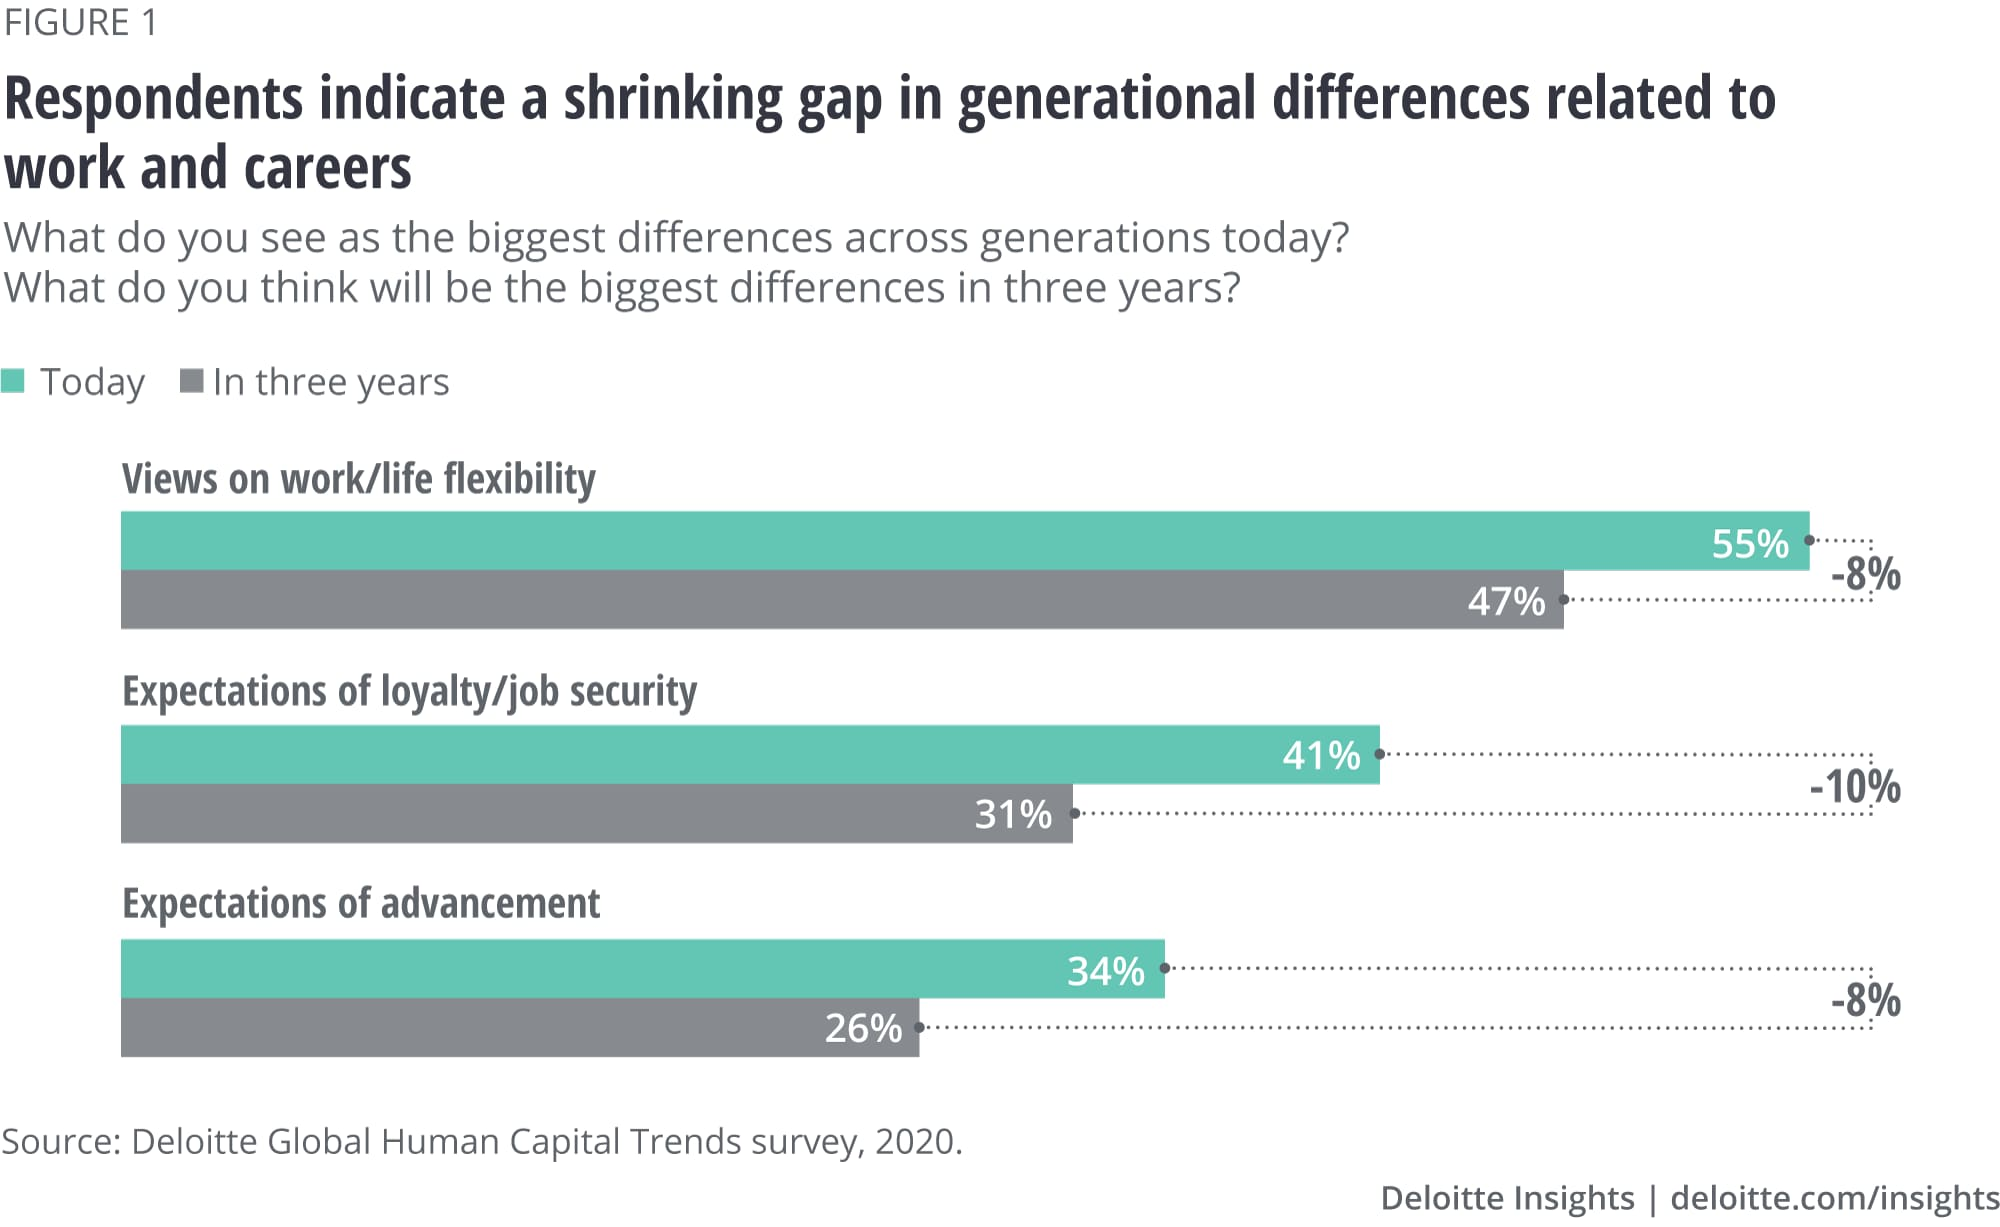 Respondents indicate a shrinking gap in generational differences related to work and careers